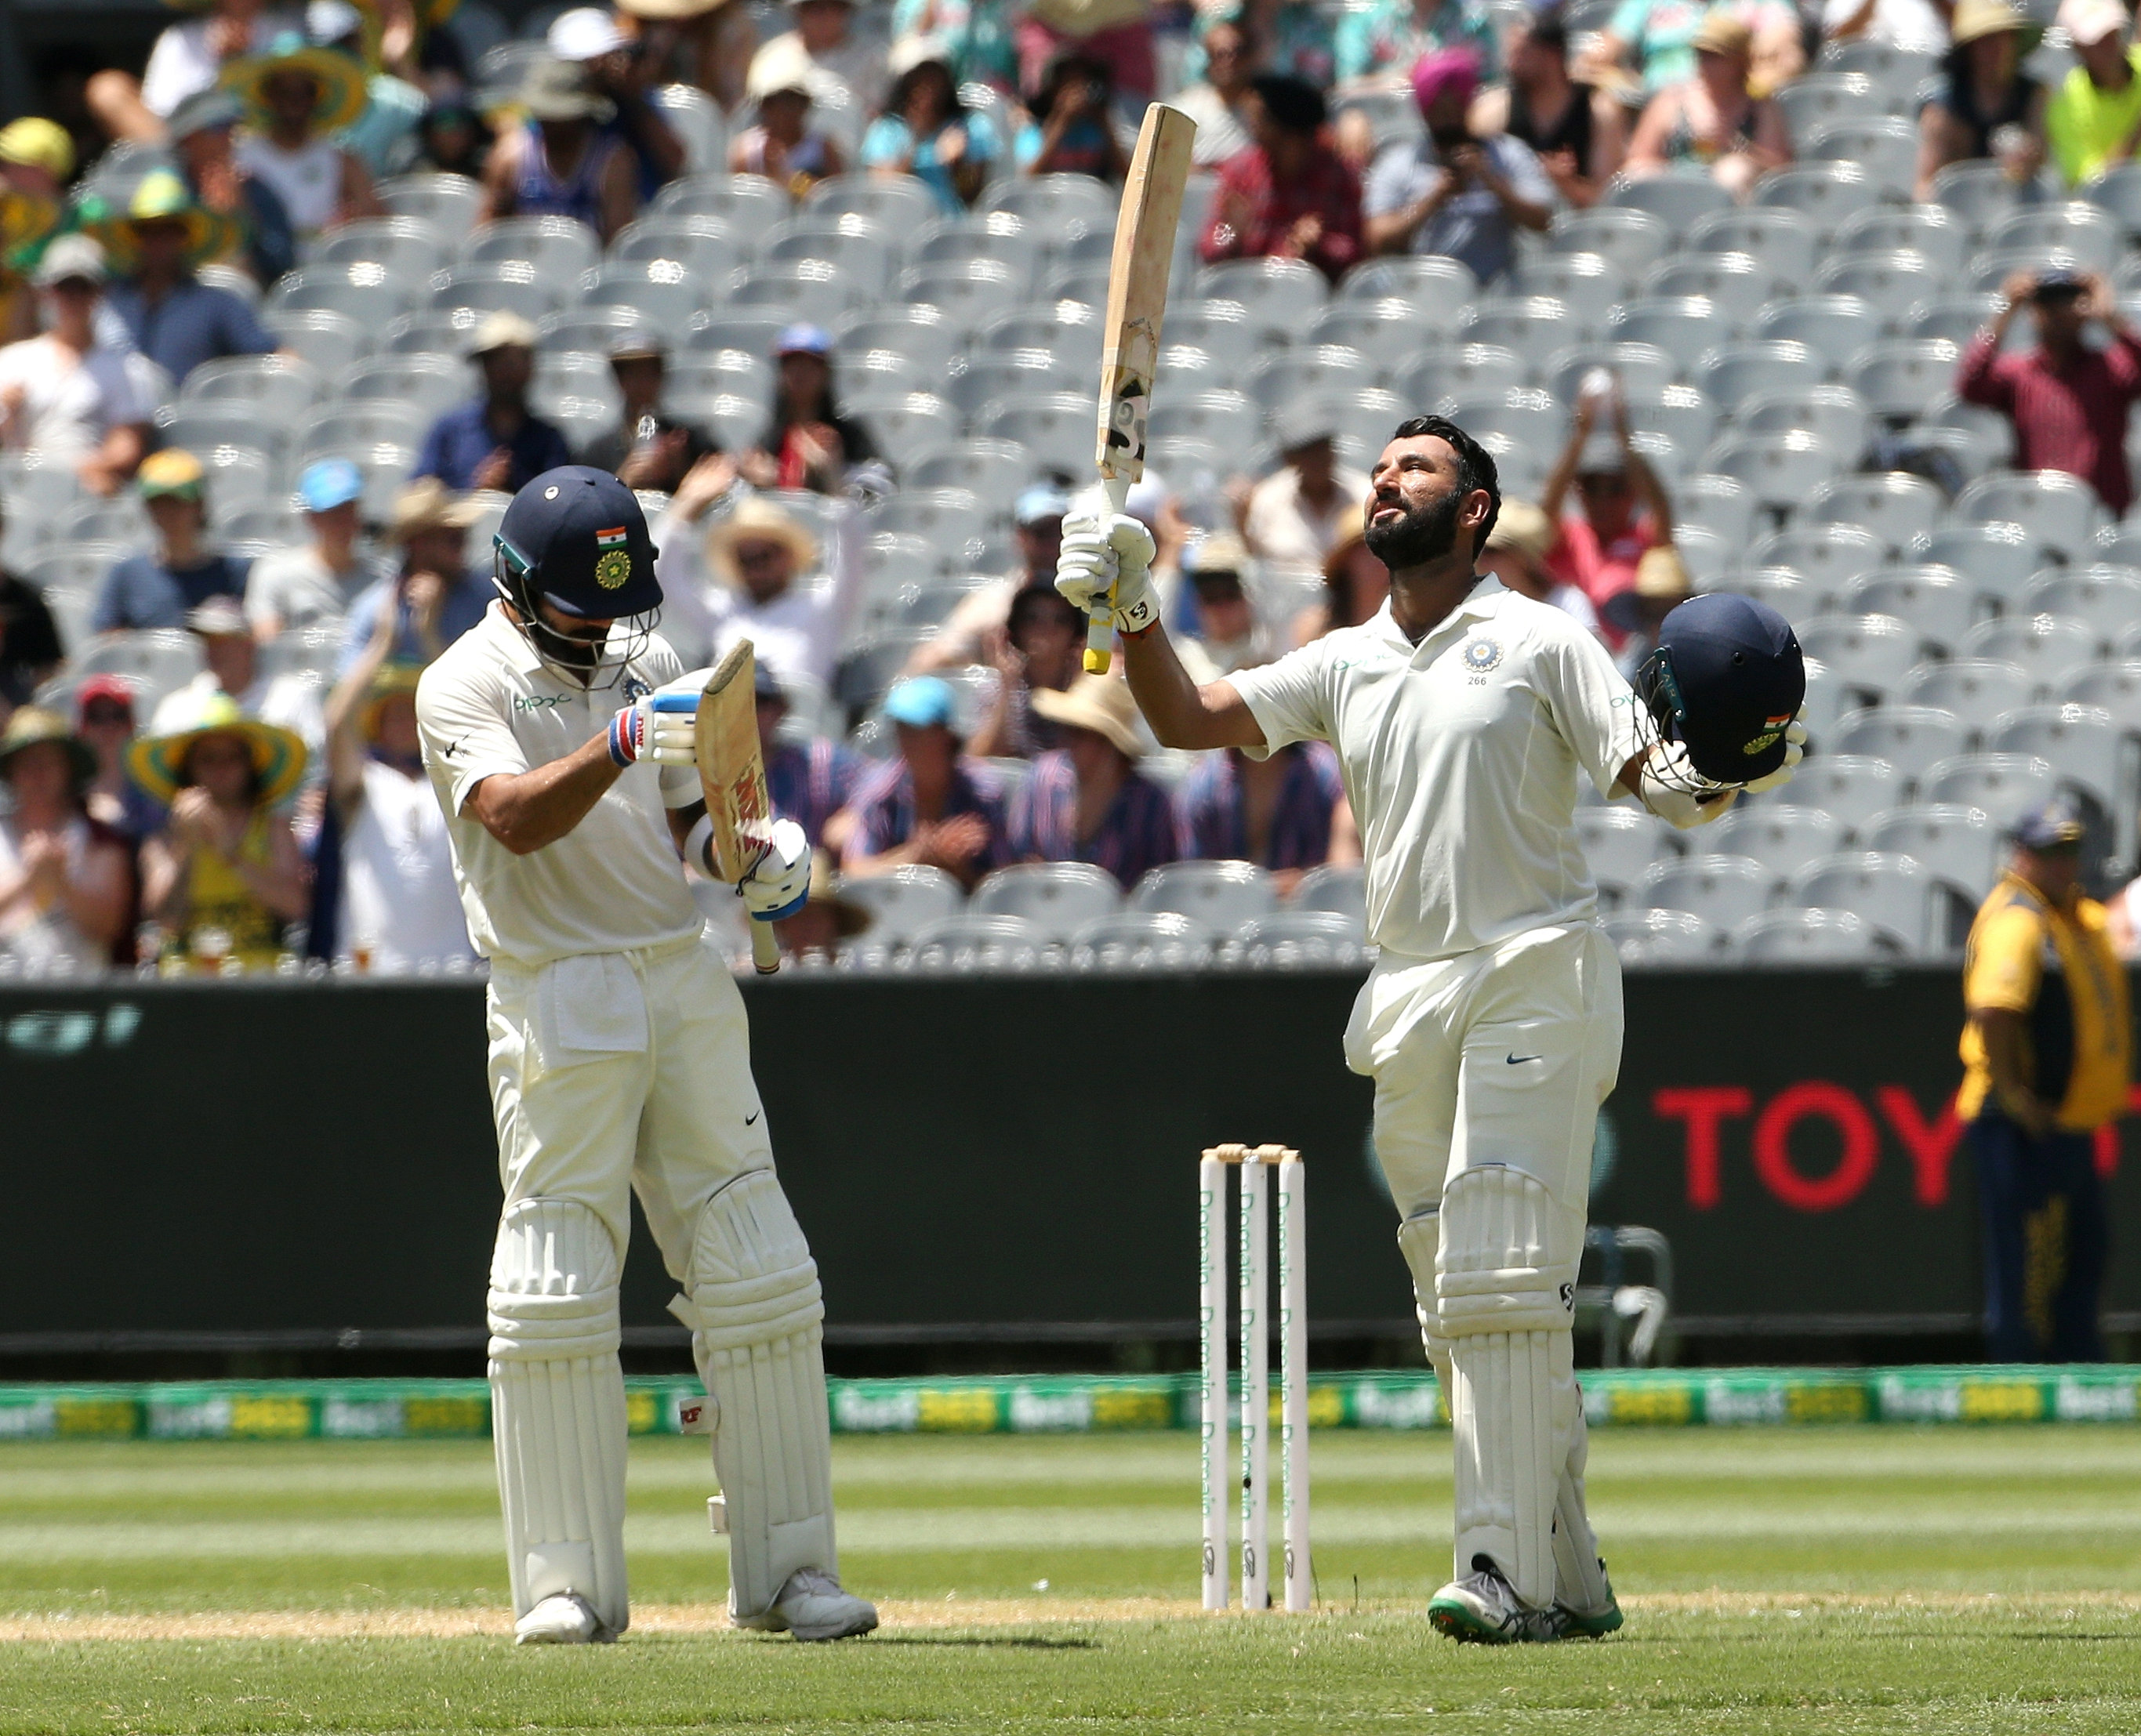 India's Cheteshwar Pujara (R) celebrates his century with captain Virat Kohli applauding on day two of the third test match between Australia and India at the MCG in Melbourne, Australia, December 27, 2018. Reuters